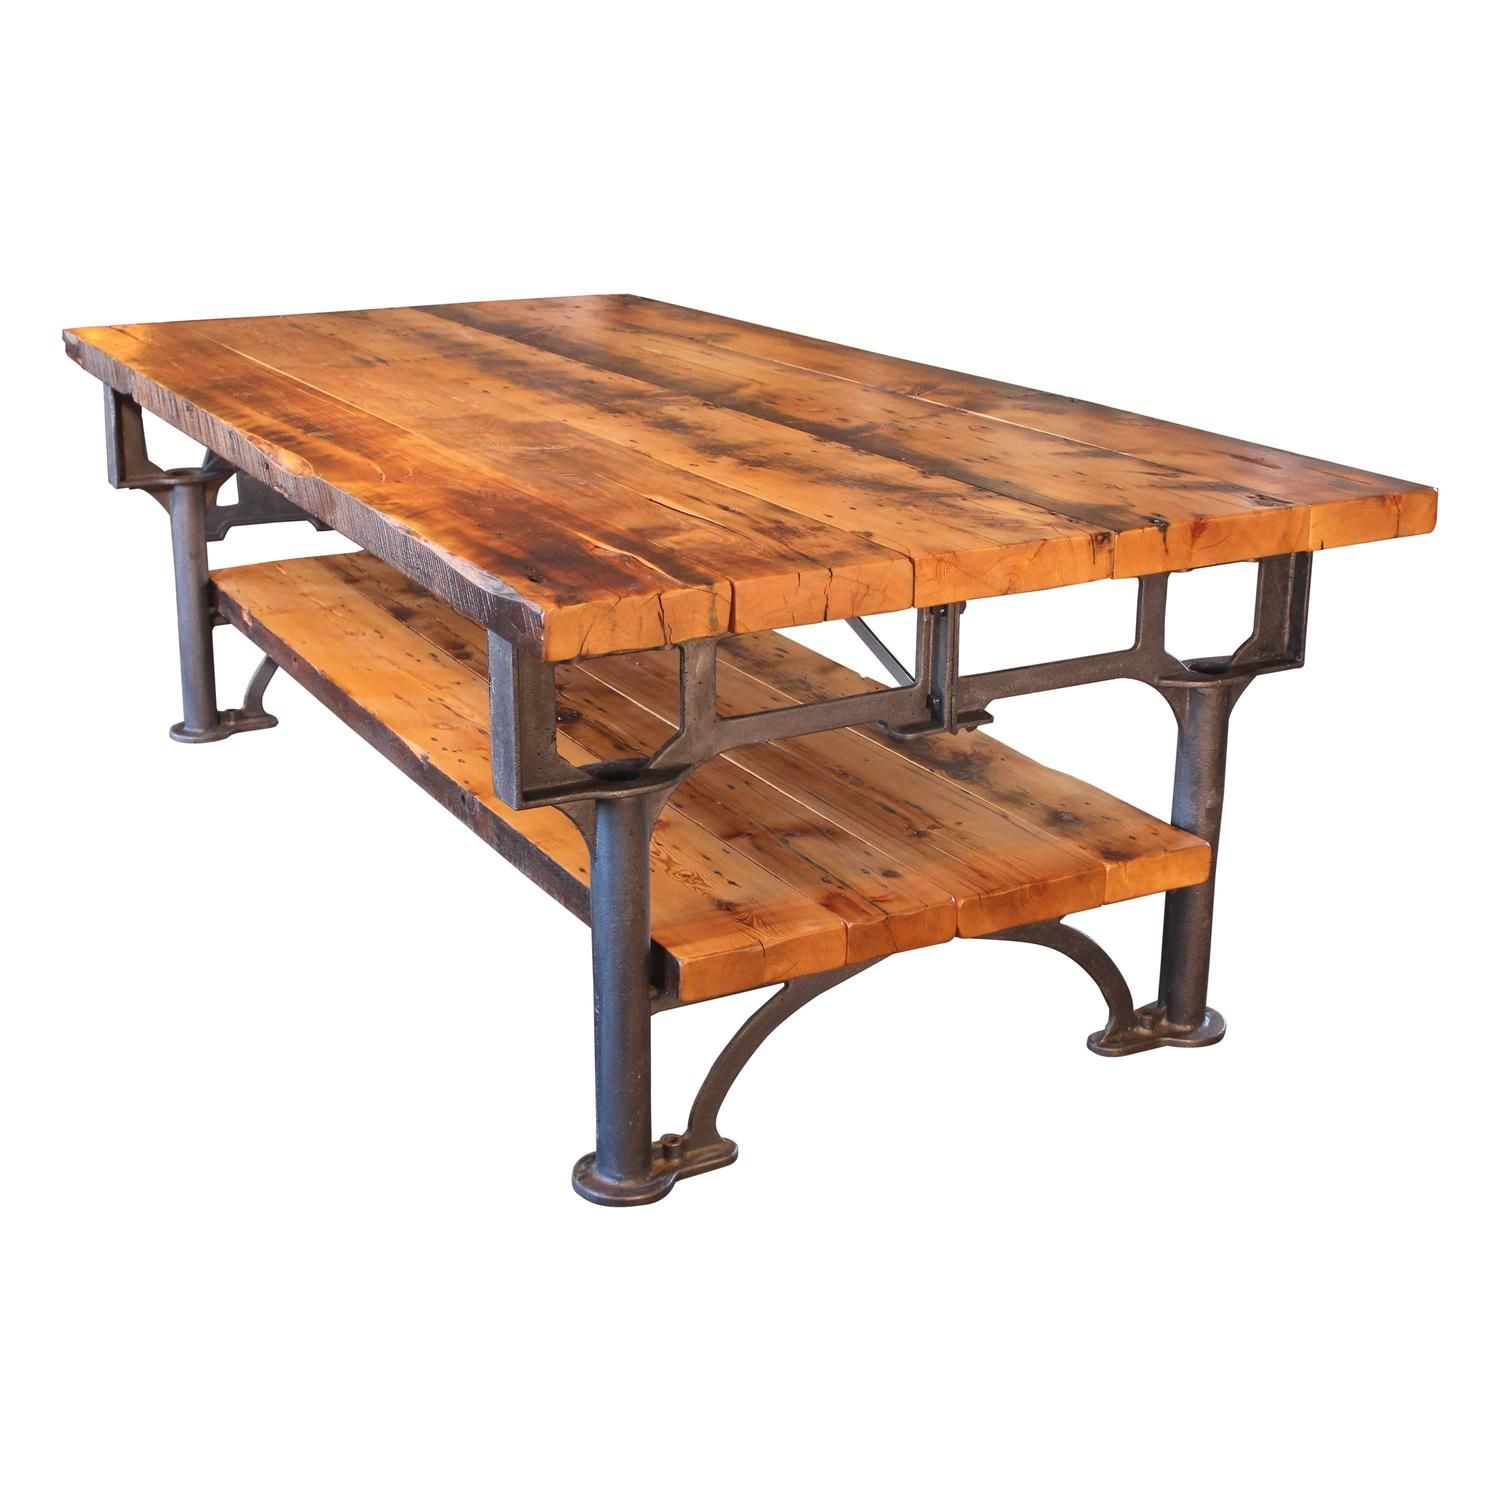 Harvest Kitchen Table Industrial reclaimed wood harvest kitchen island great table industrial reclaimed wood harvest kitchen island great table workwithnaturefo